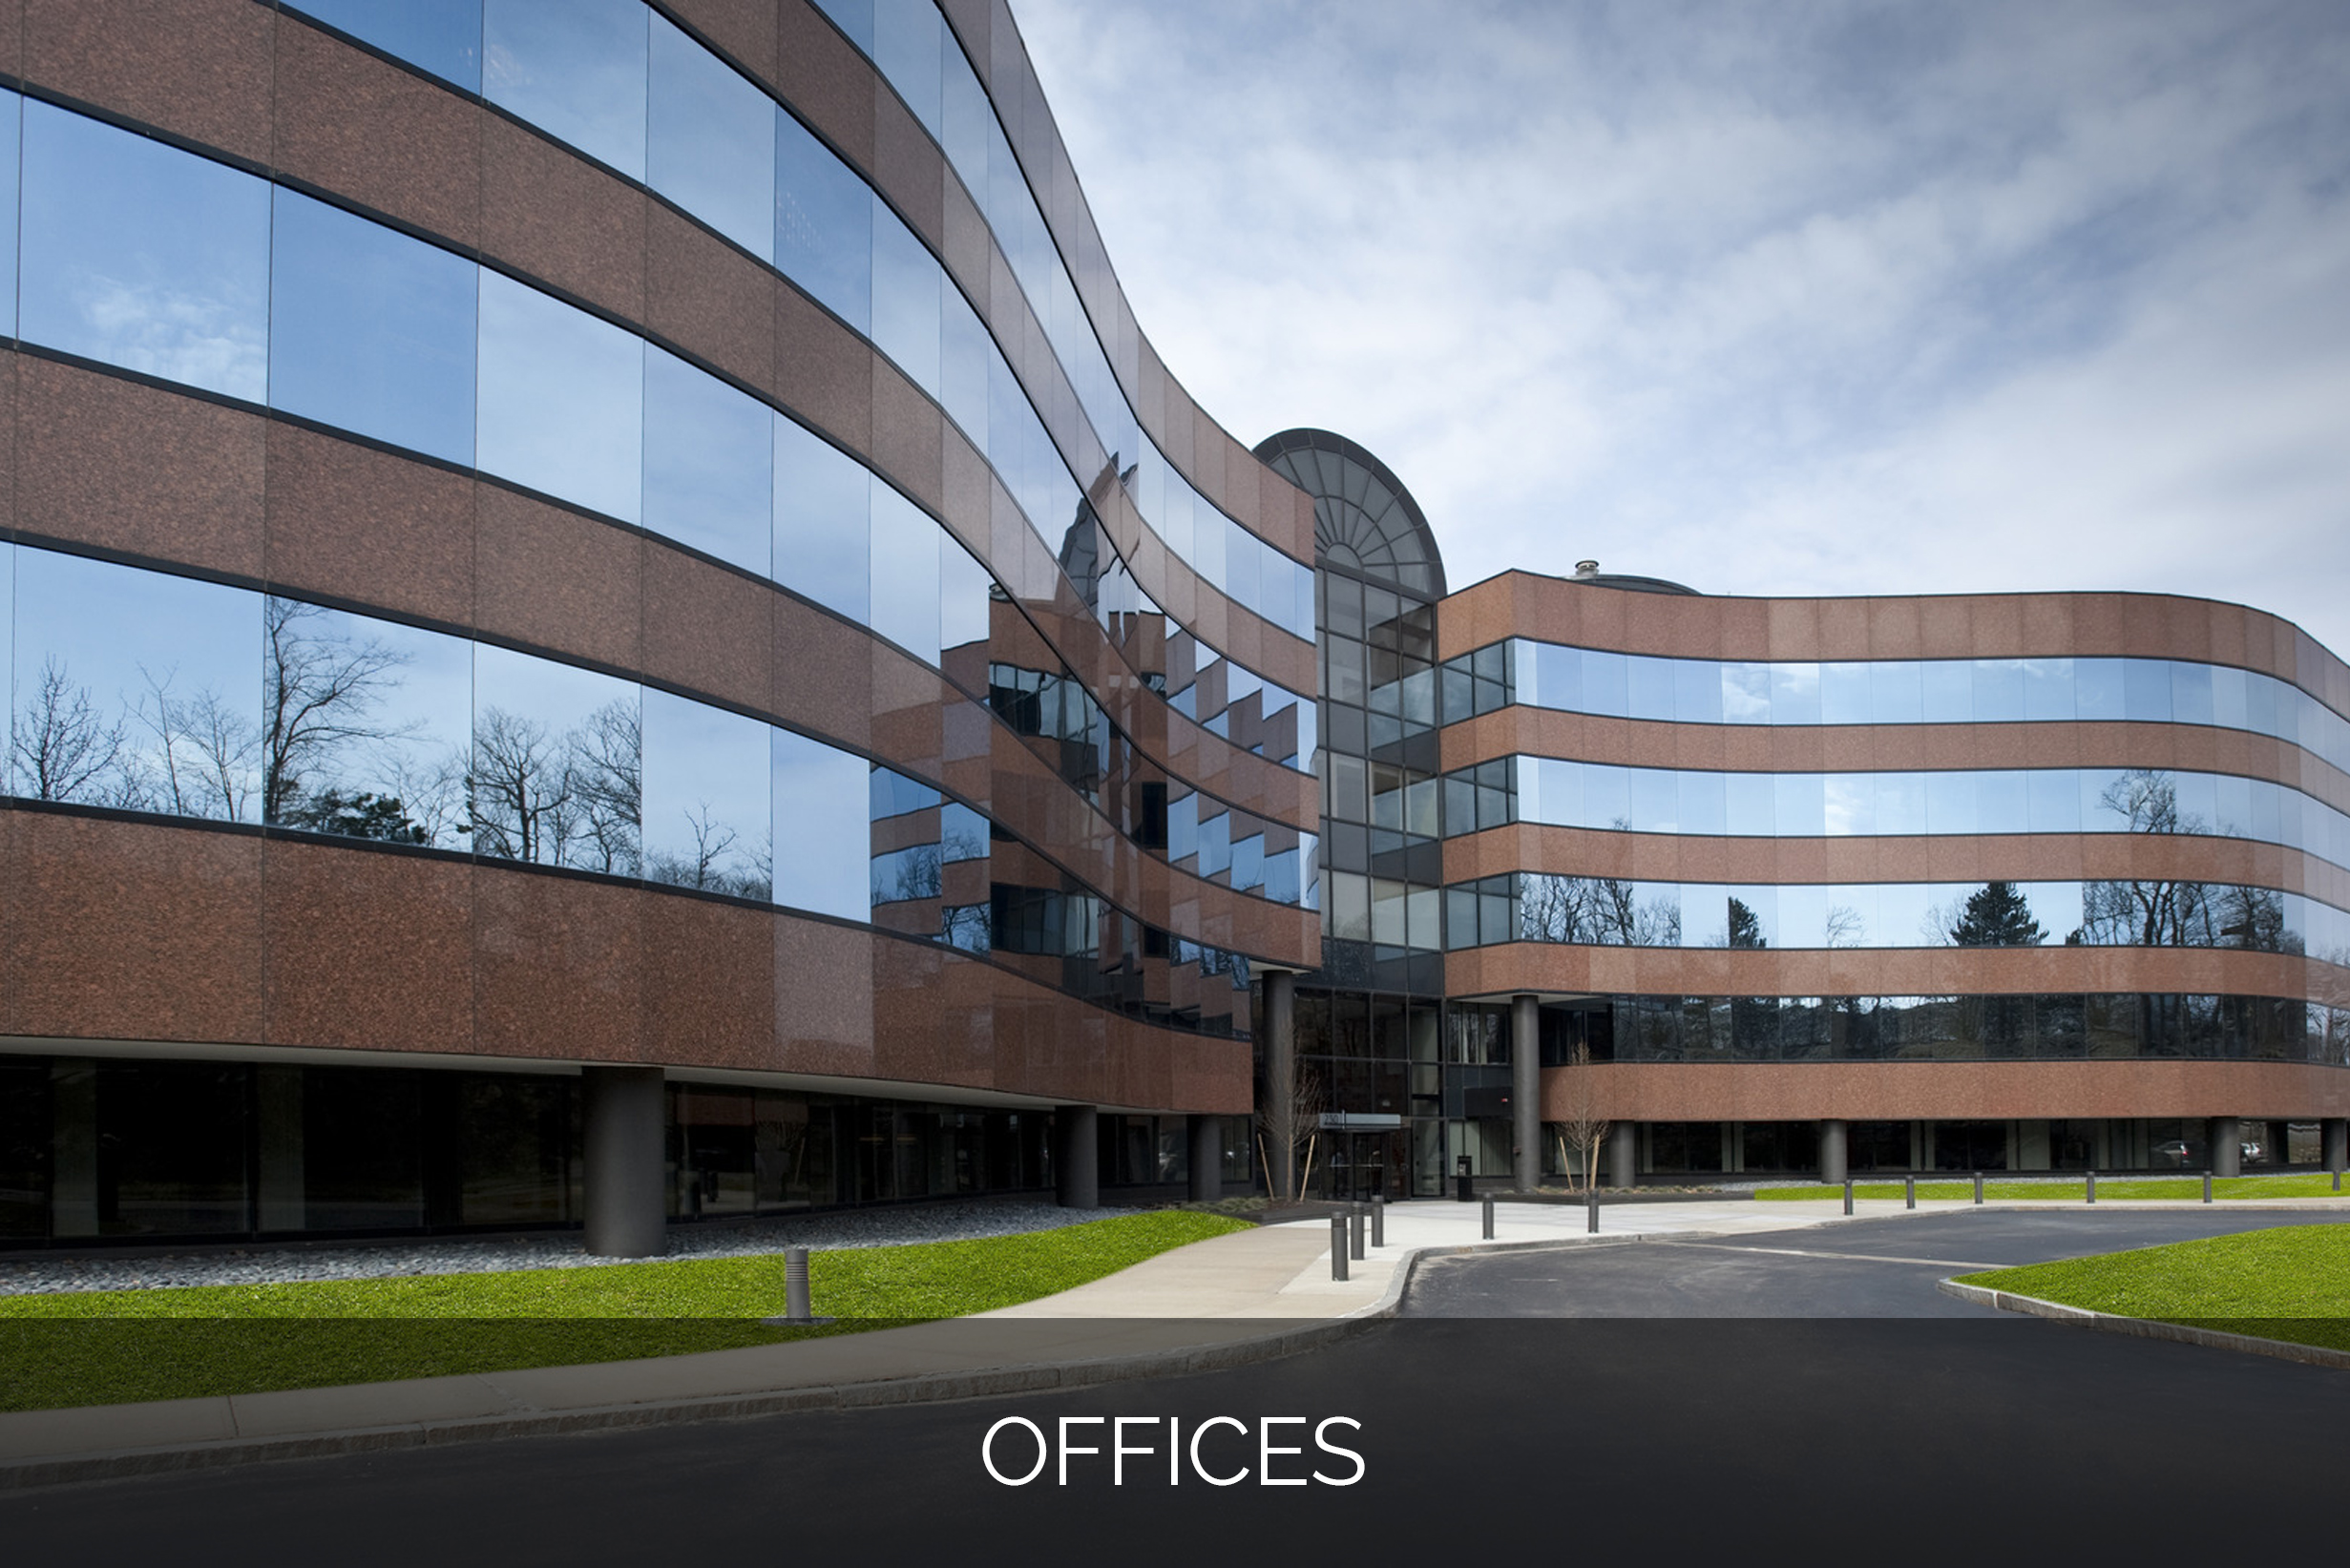 offices-TEXT.jpg